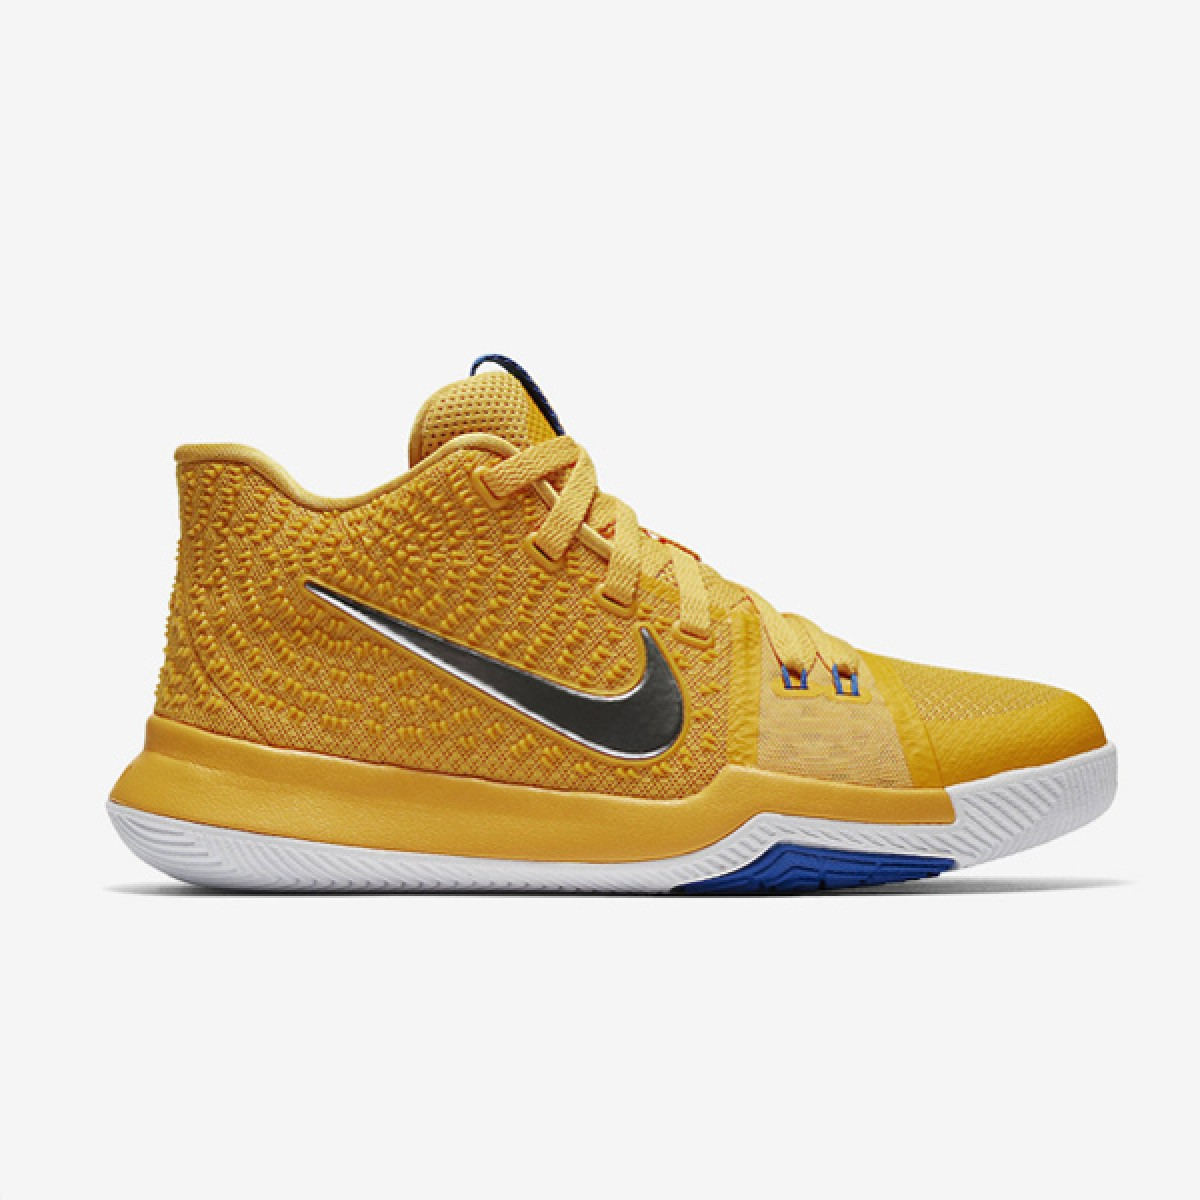 Nike Kyrie 3 GS 'Mac and Cheese'